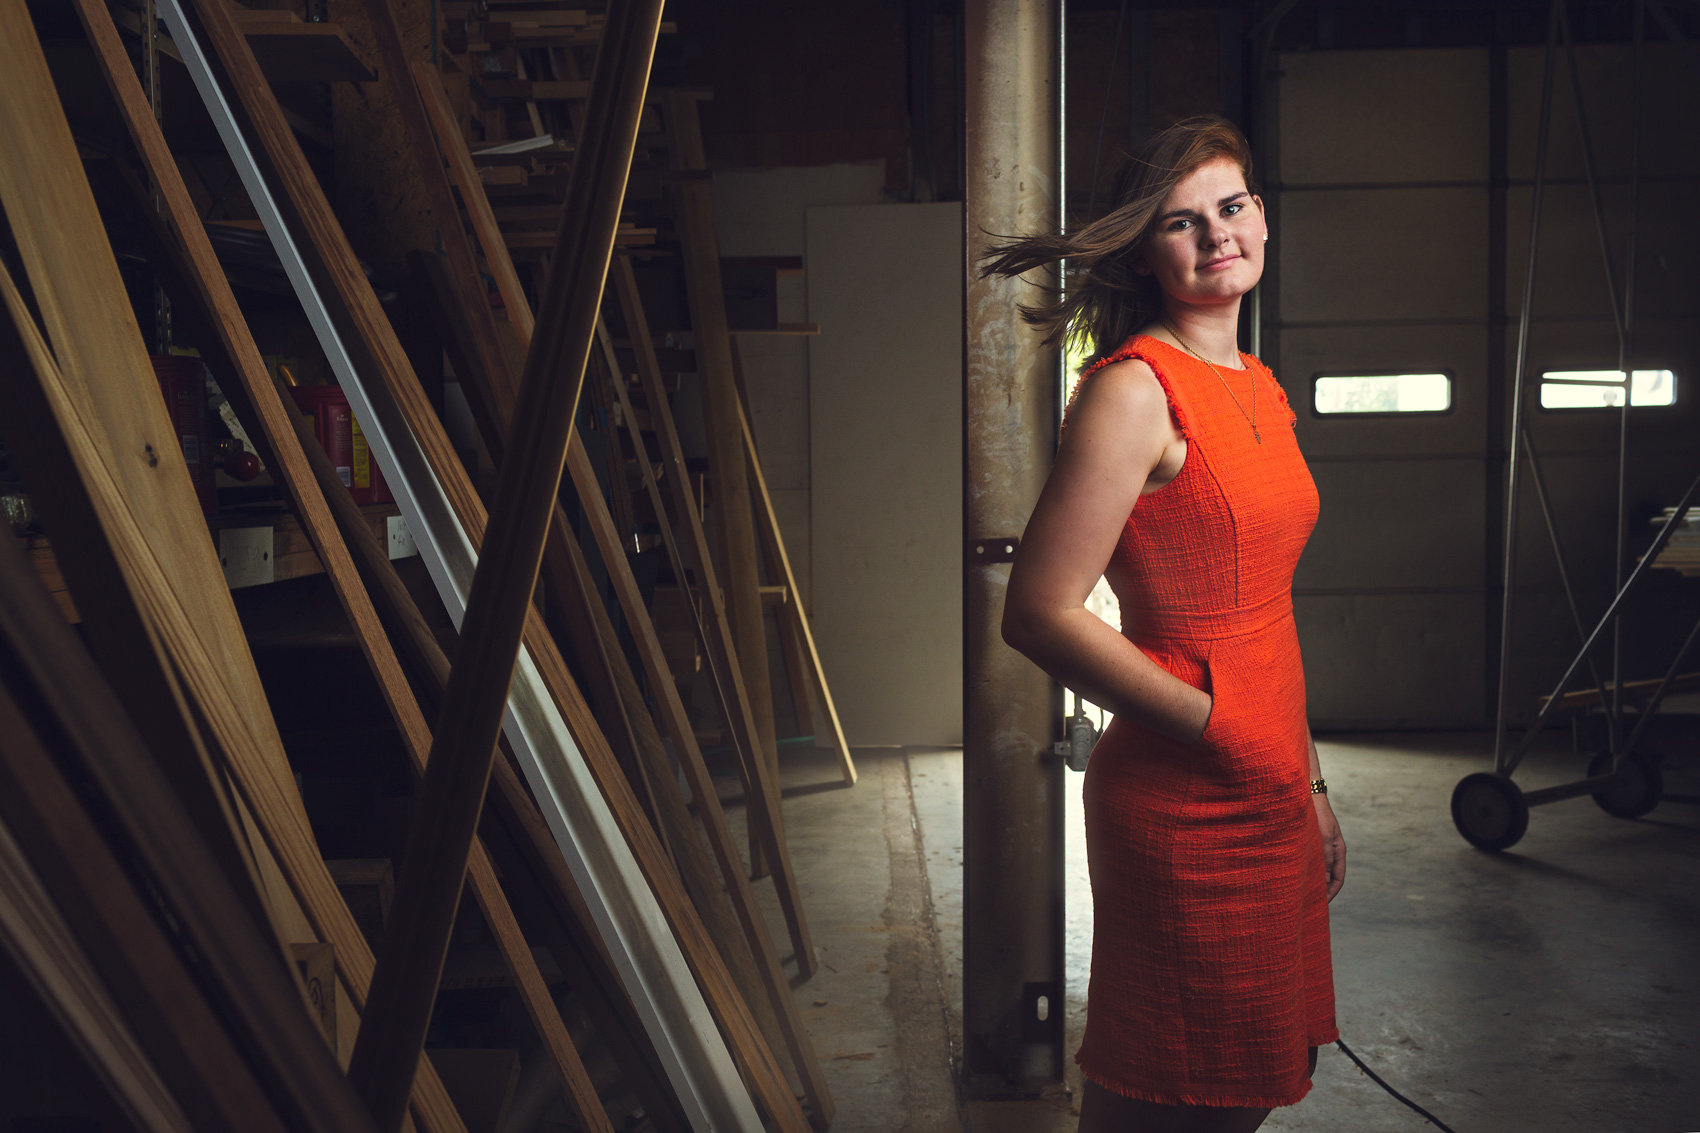 young woman in orange dress standing in lumber yard washington dc editorial photography